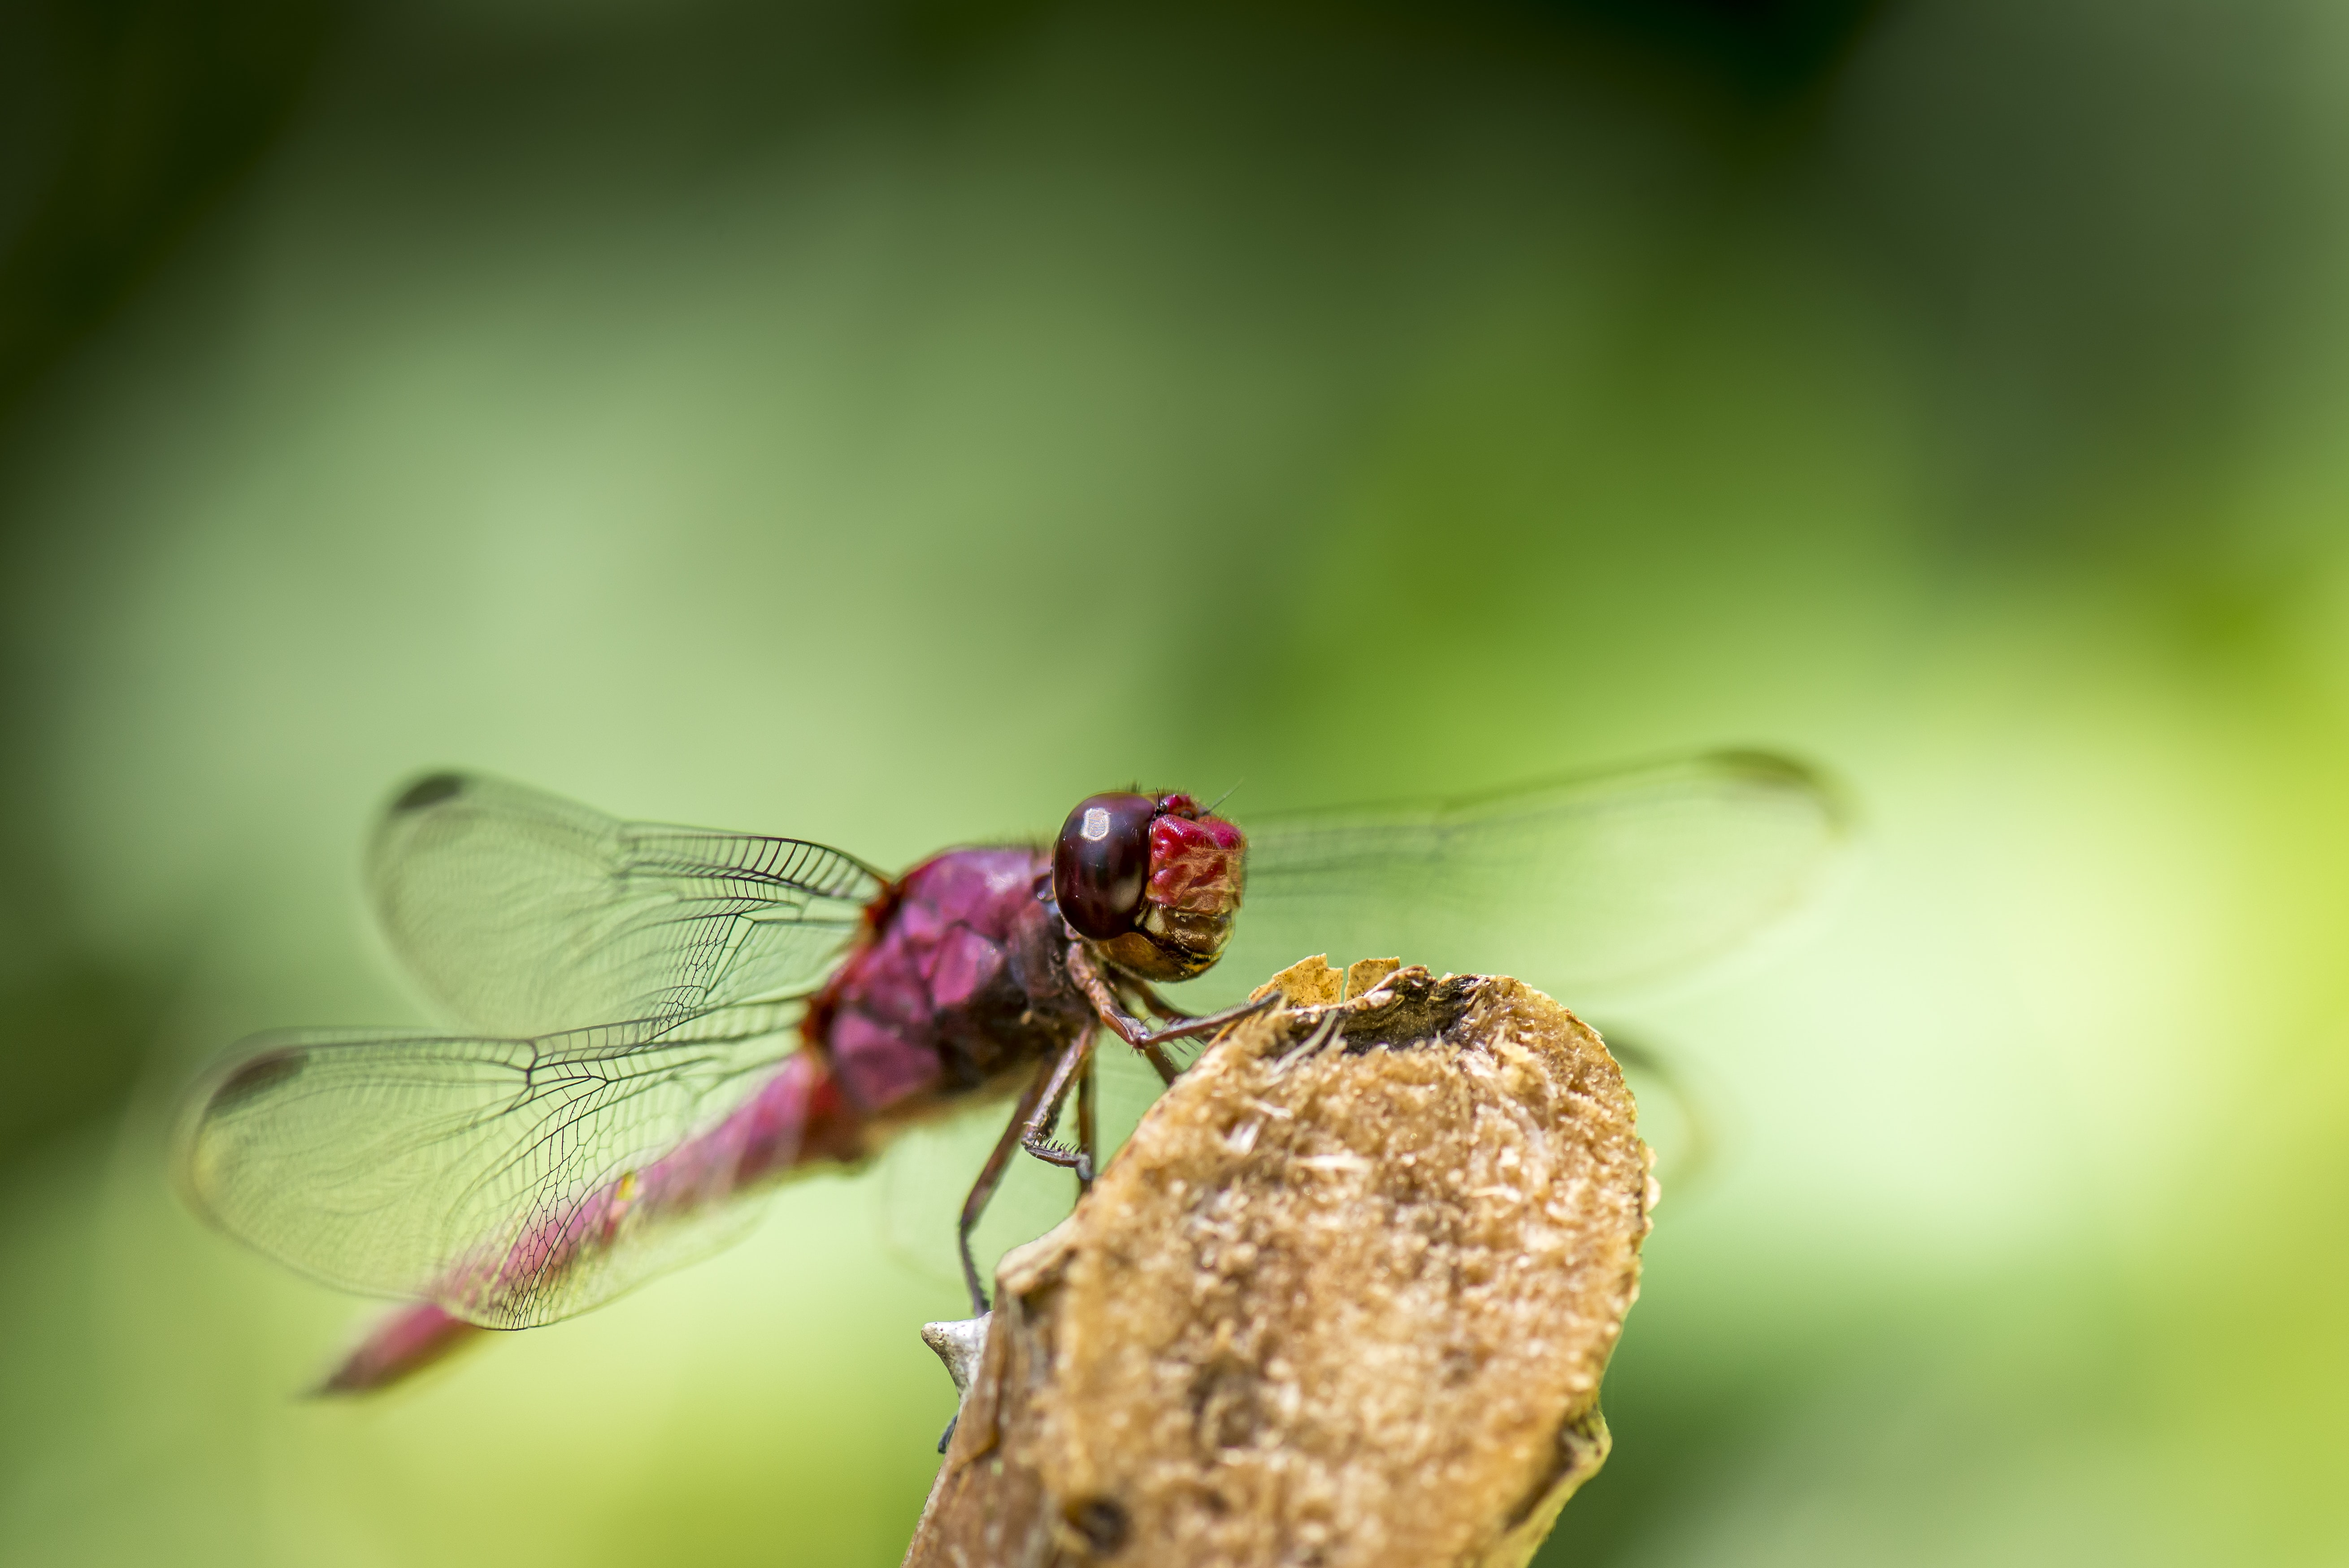 Purple dragonfly perched on a plant